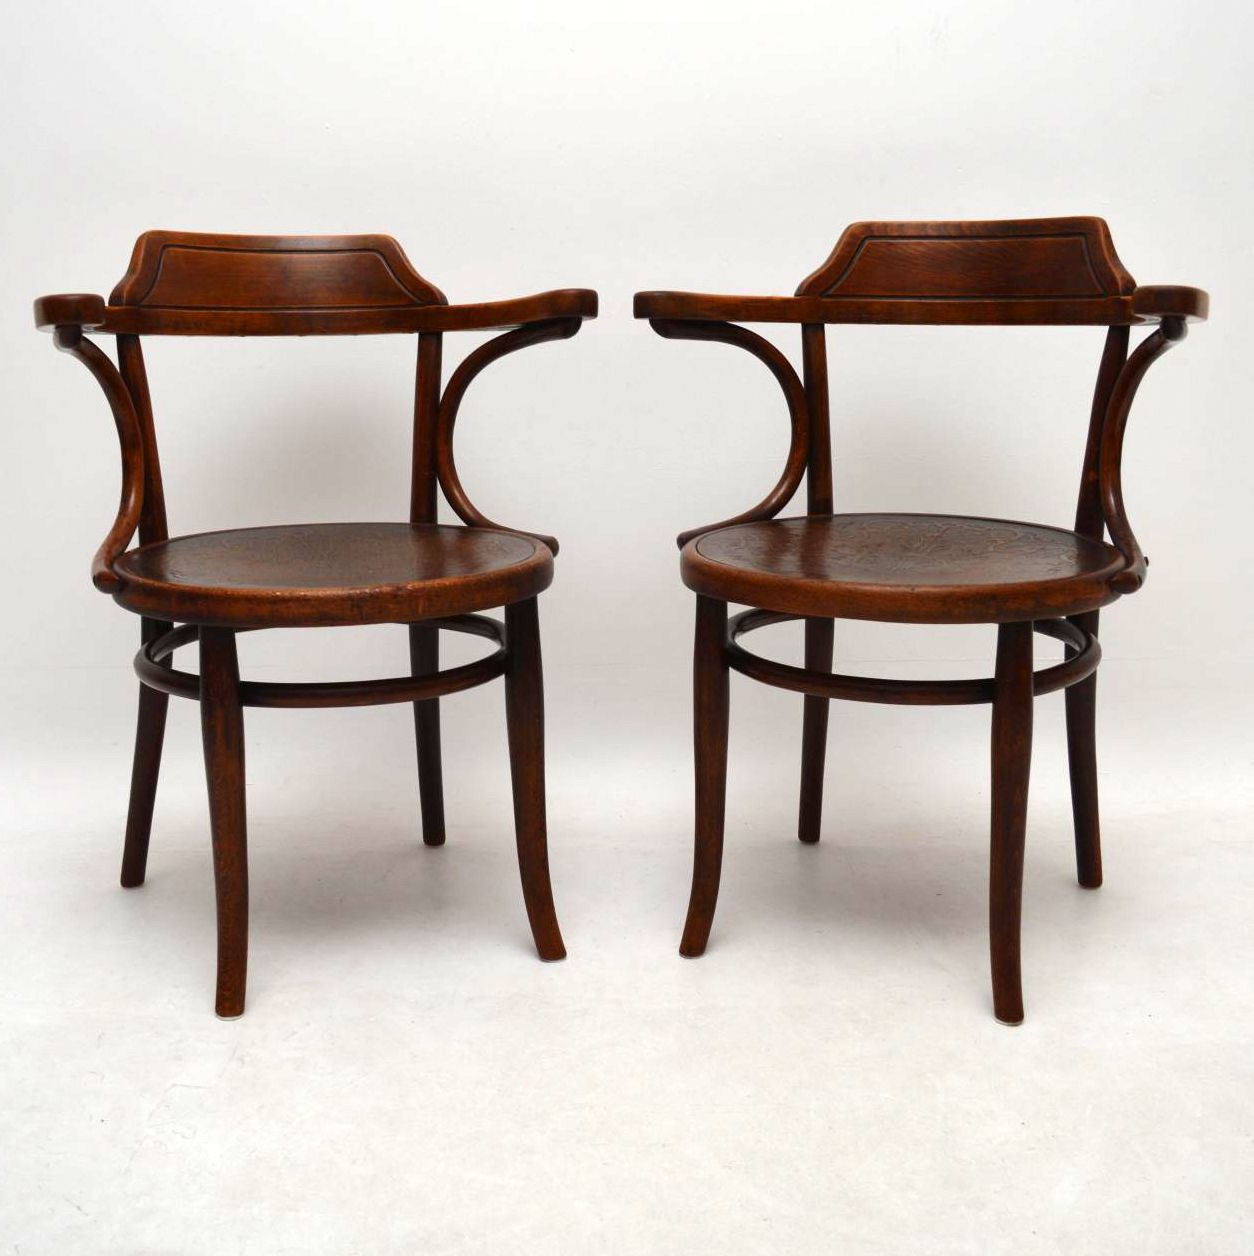 Image of: Pair Of Antique Bentwood Armchairs By Thonet Interior Boutiques Antiques For Sale And Mid Century Modern Furniture French Furniture Antique Lighting Retro Furniture And Danish Furniture